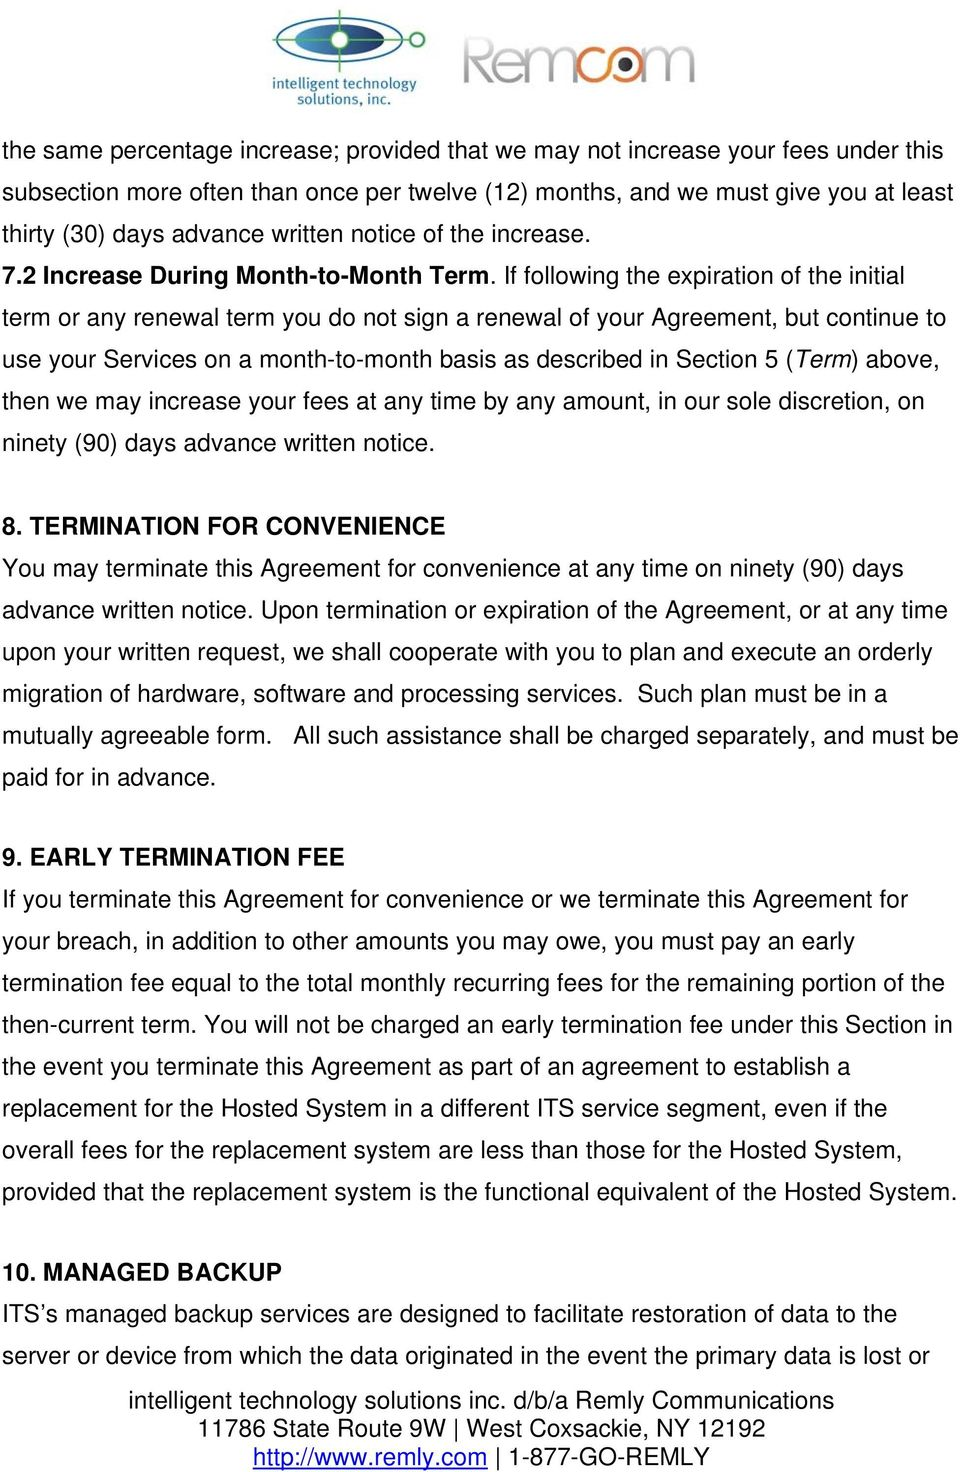 If following the expiration of the initial term or any renewal term you do not sign a renewal of your Agreement, but continue to use your Services on a month-to-month basis as described in Section 5